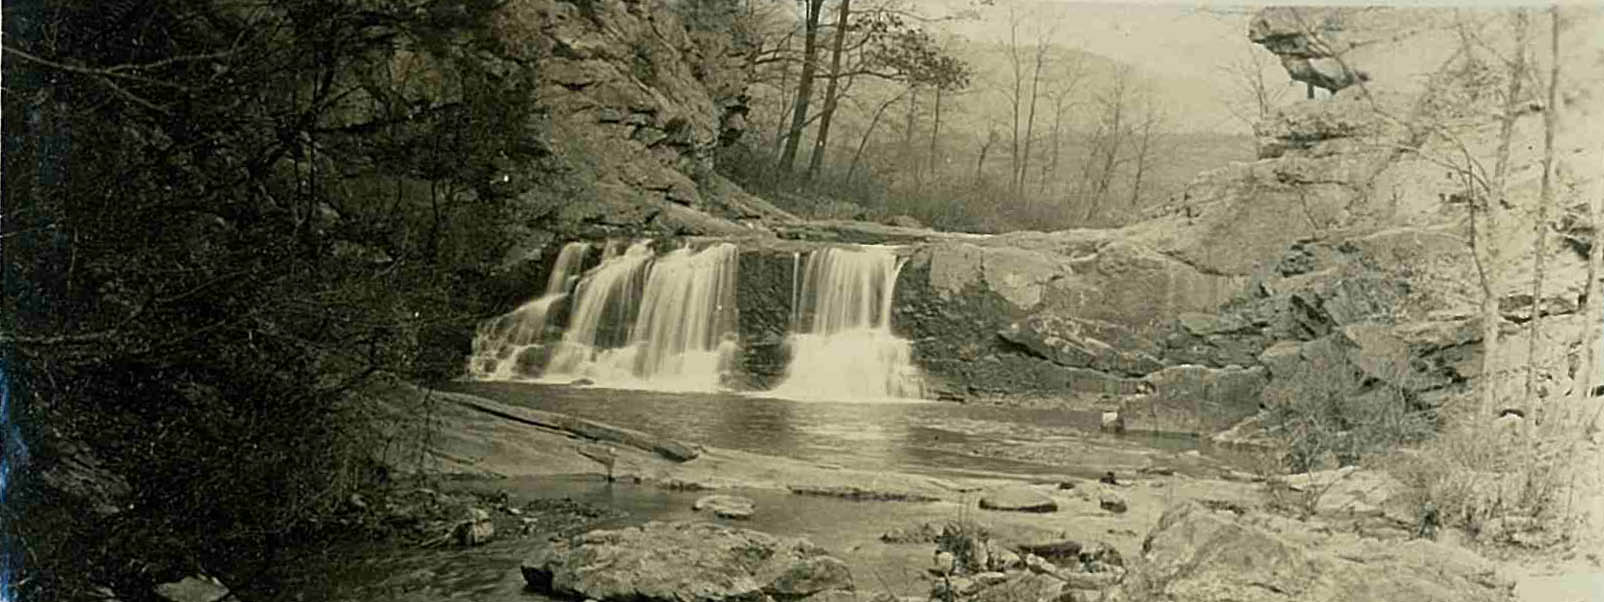 Future site of the Carvins Cove Dame -the Falls at Carvins Cove from the creek bed. 11-25-26